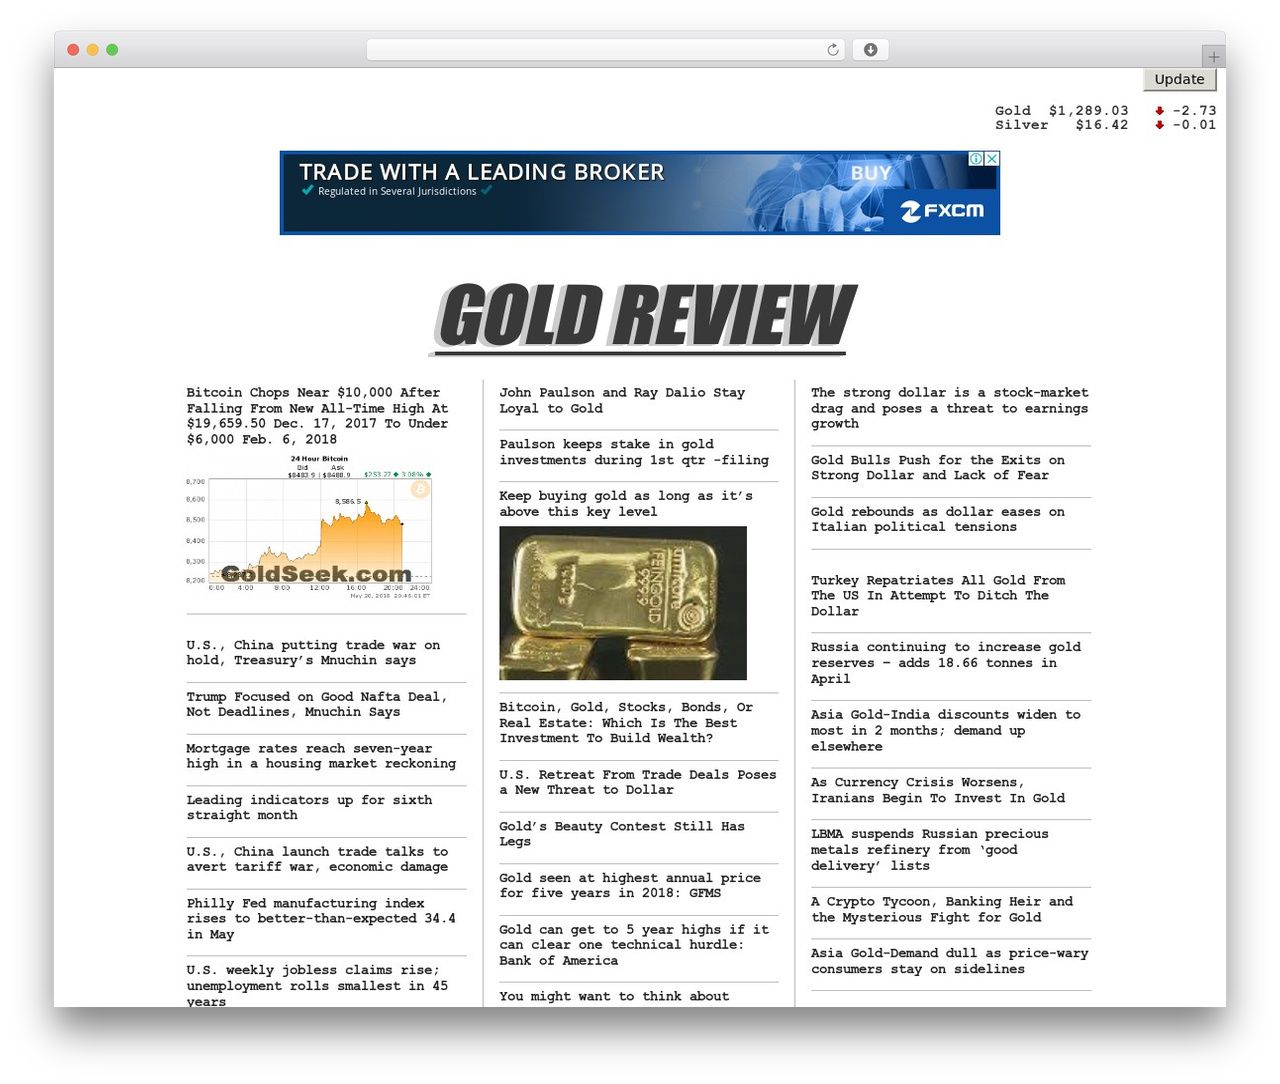 Wp Drudge V2 Wp Template Goldreview Wordpress Themes